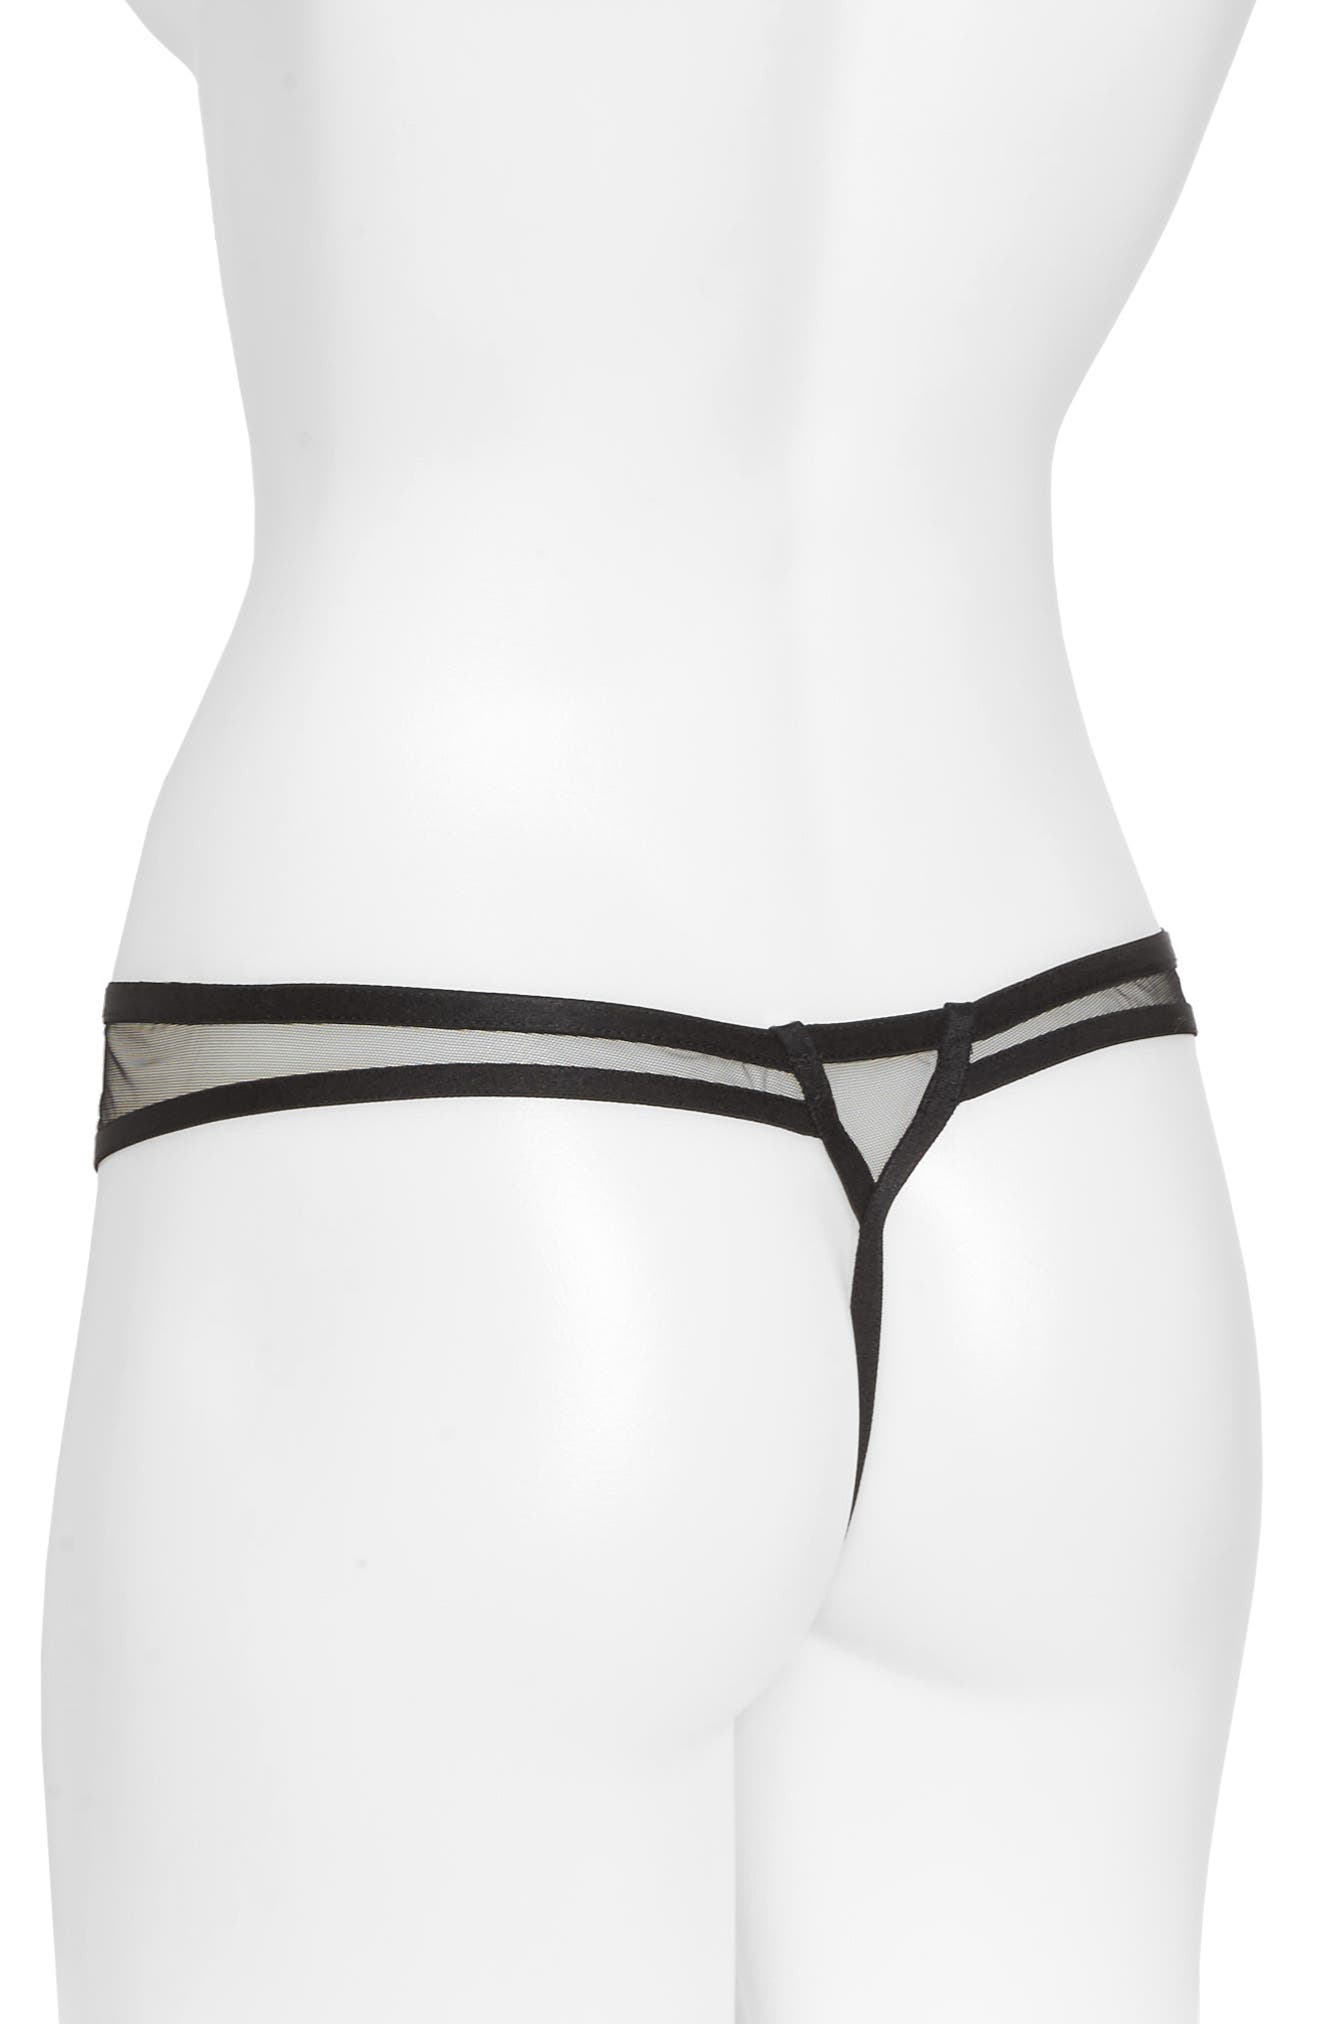 Exotique G-String Thong,                             Alternate thumbnail 2, color,                             007